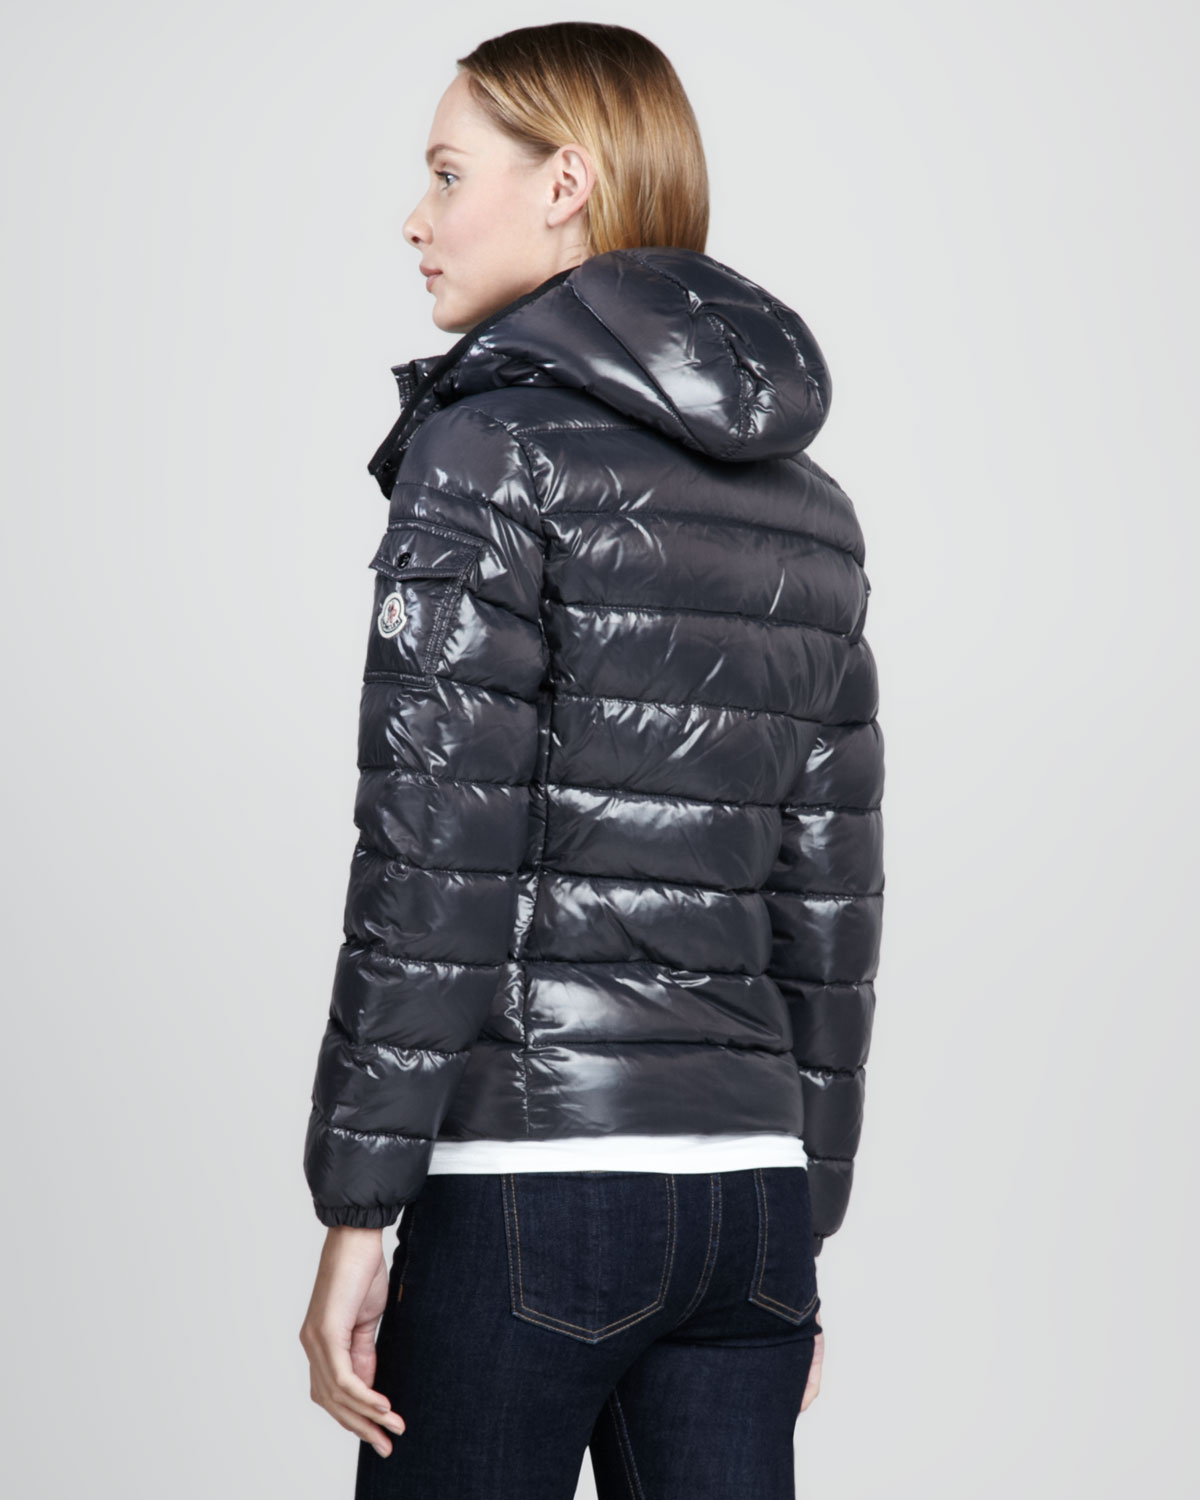 Moncler Bady Short Puffer Jacket Gray In Black Lyst